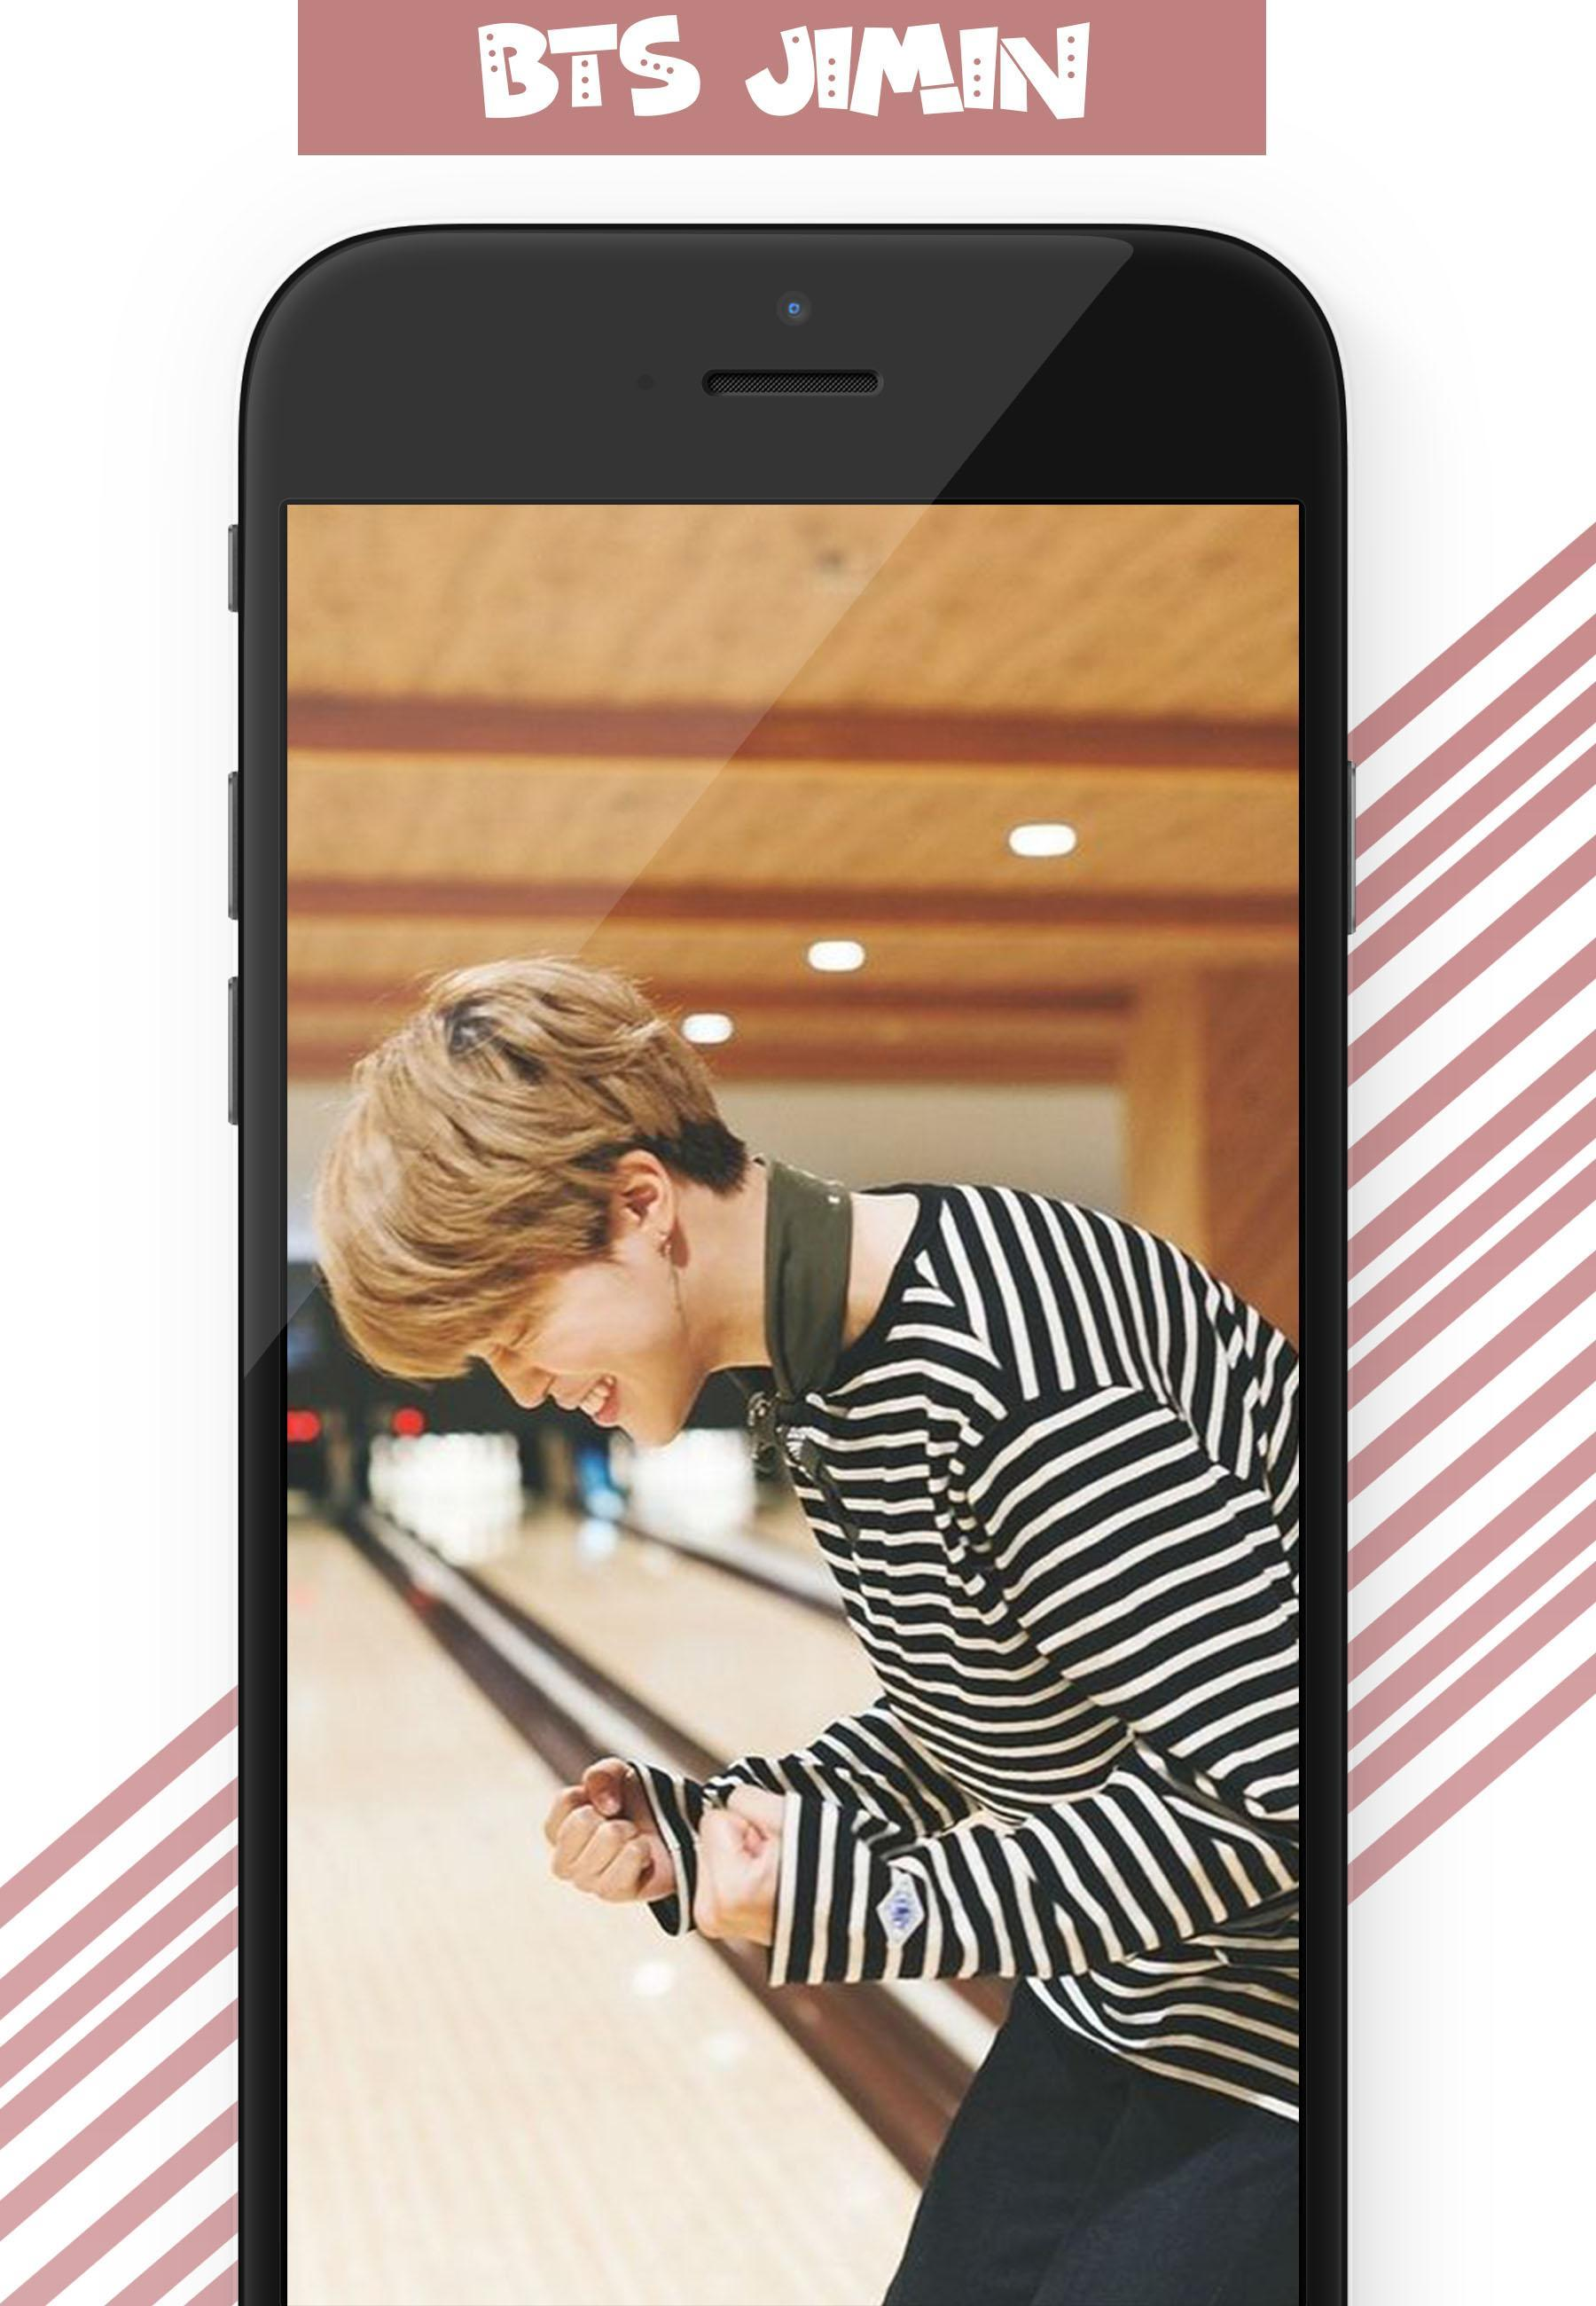 Bts Jimin Wallpaper For Android Apk Download